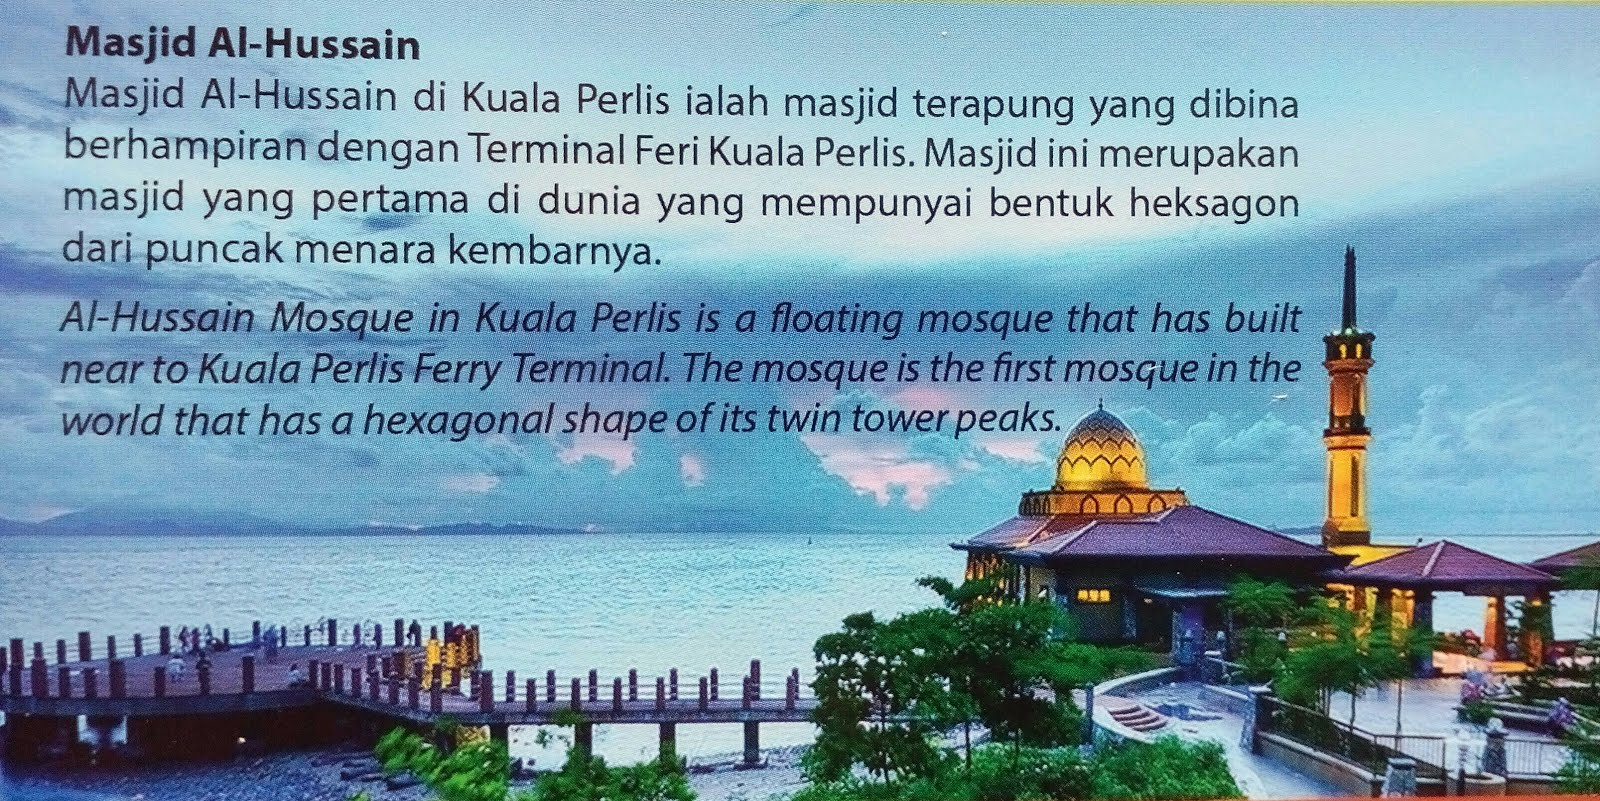 Al Hussain Mosque & Kuala Perlis Jetty to Langkawi Islands